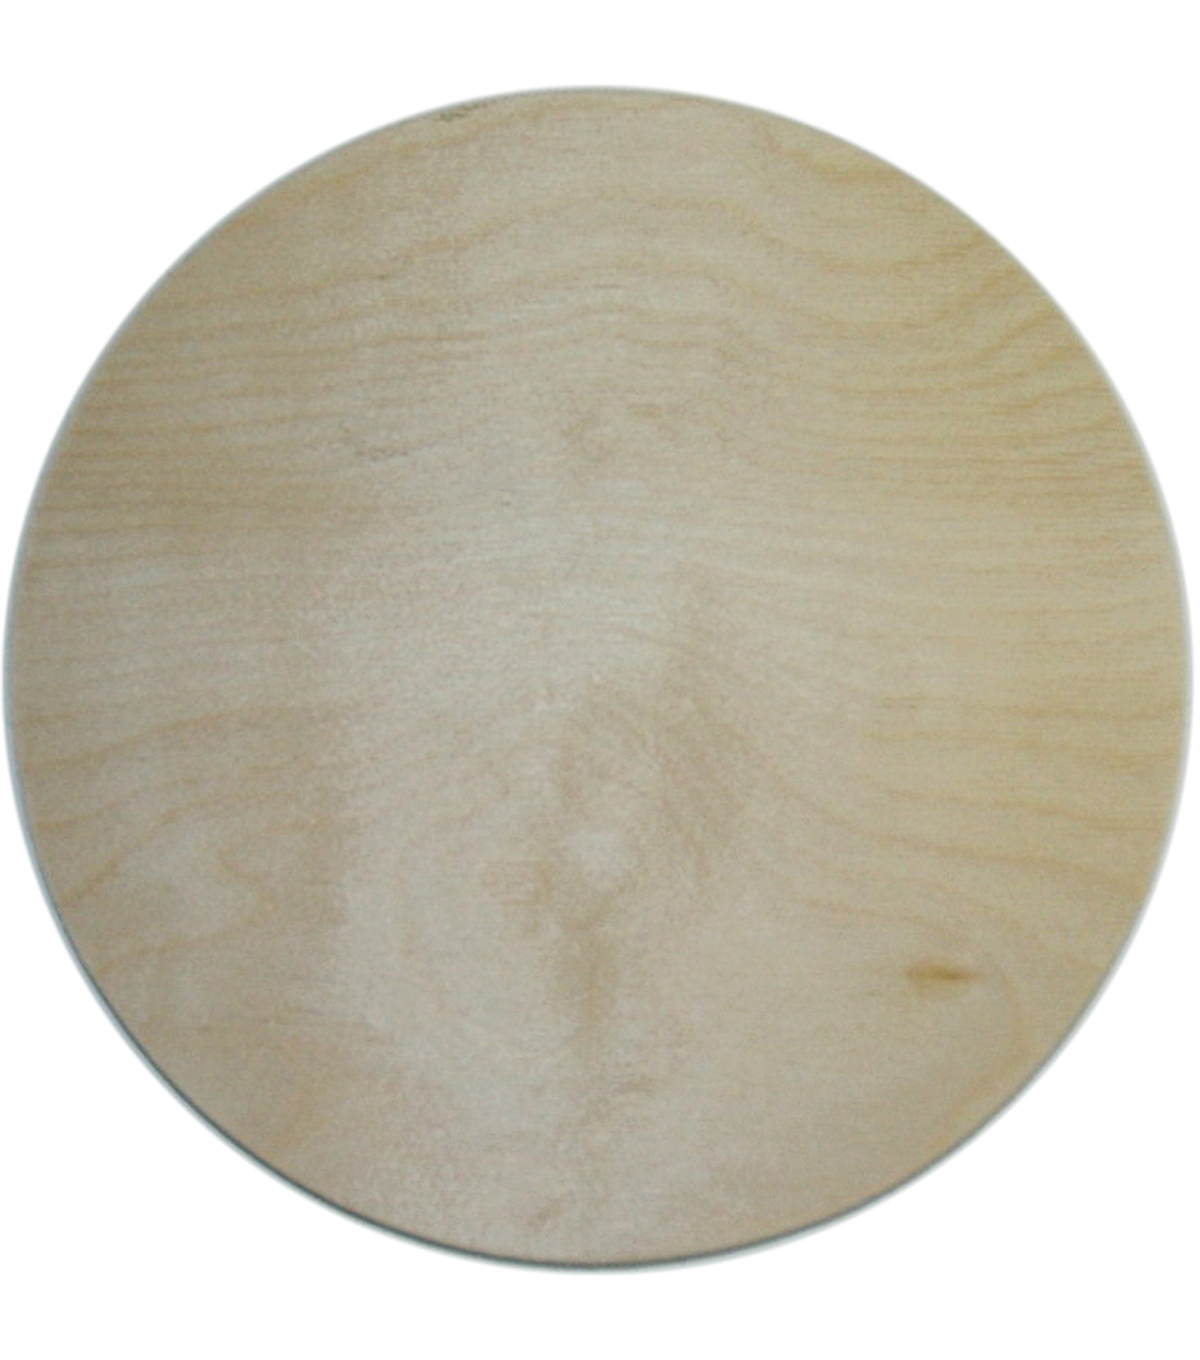 Unfinished Round Wood Picture Frames - Round Designs